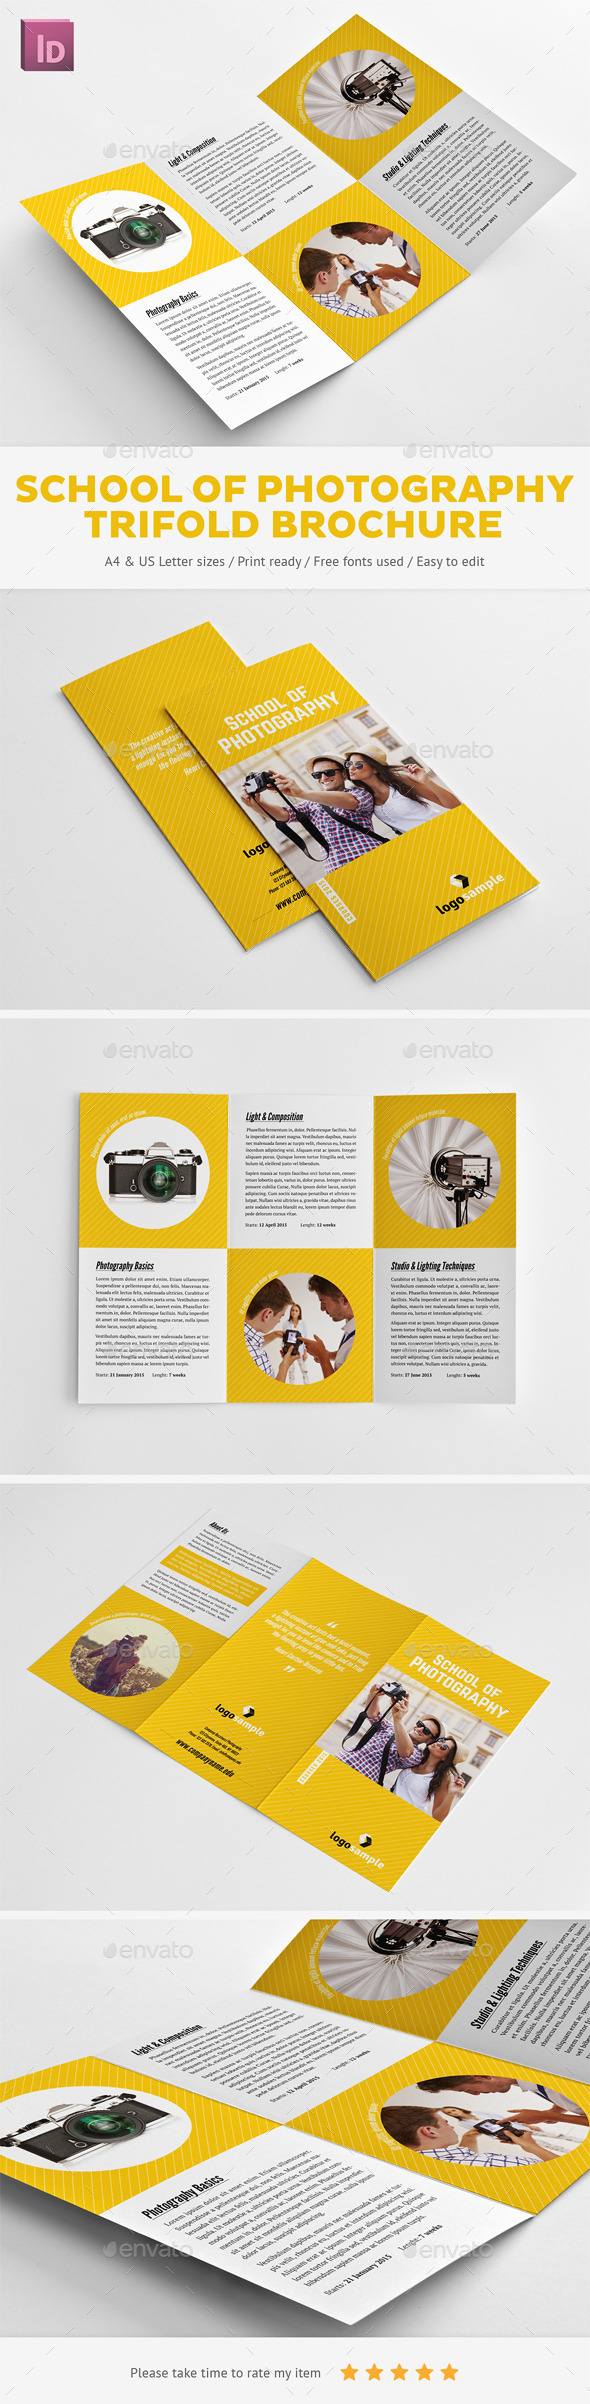 School of Photography Trifold Brochure - Informational Brochures